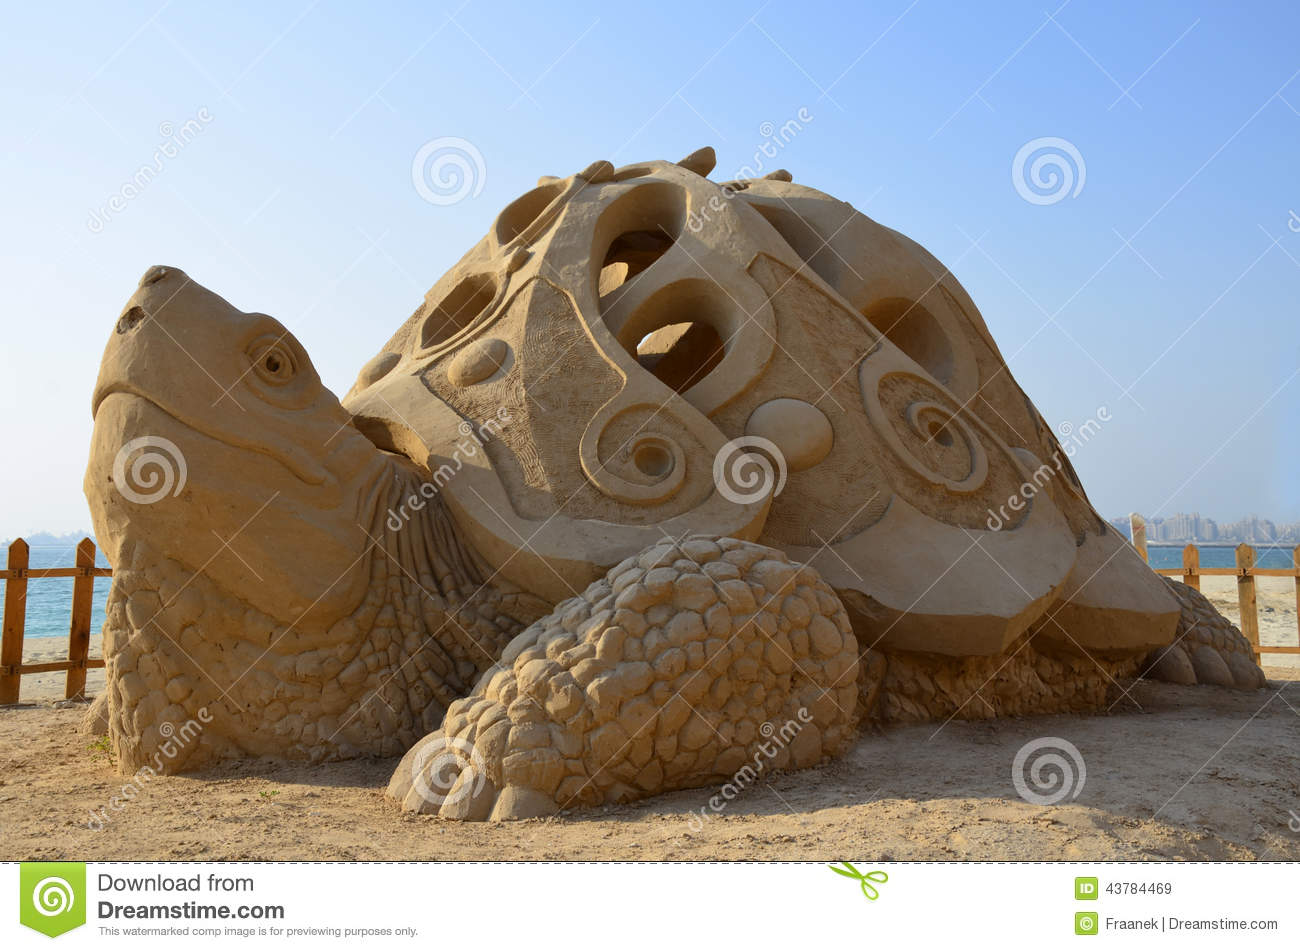 Sand sculpture - giant turtle.